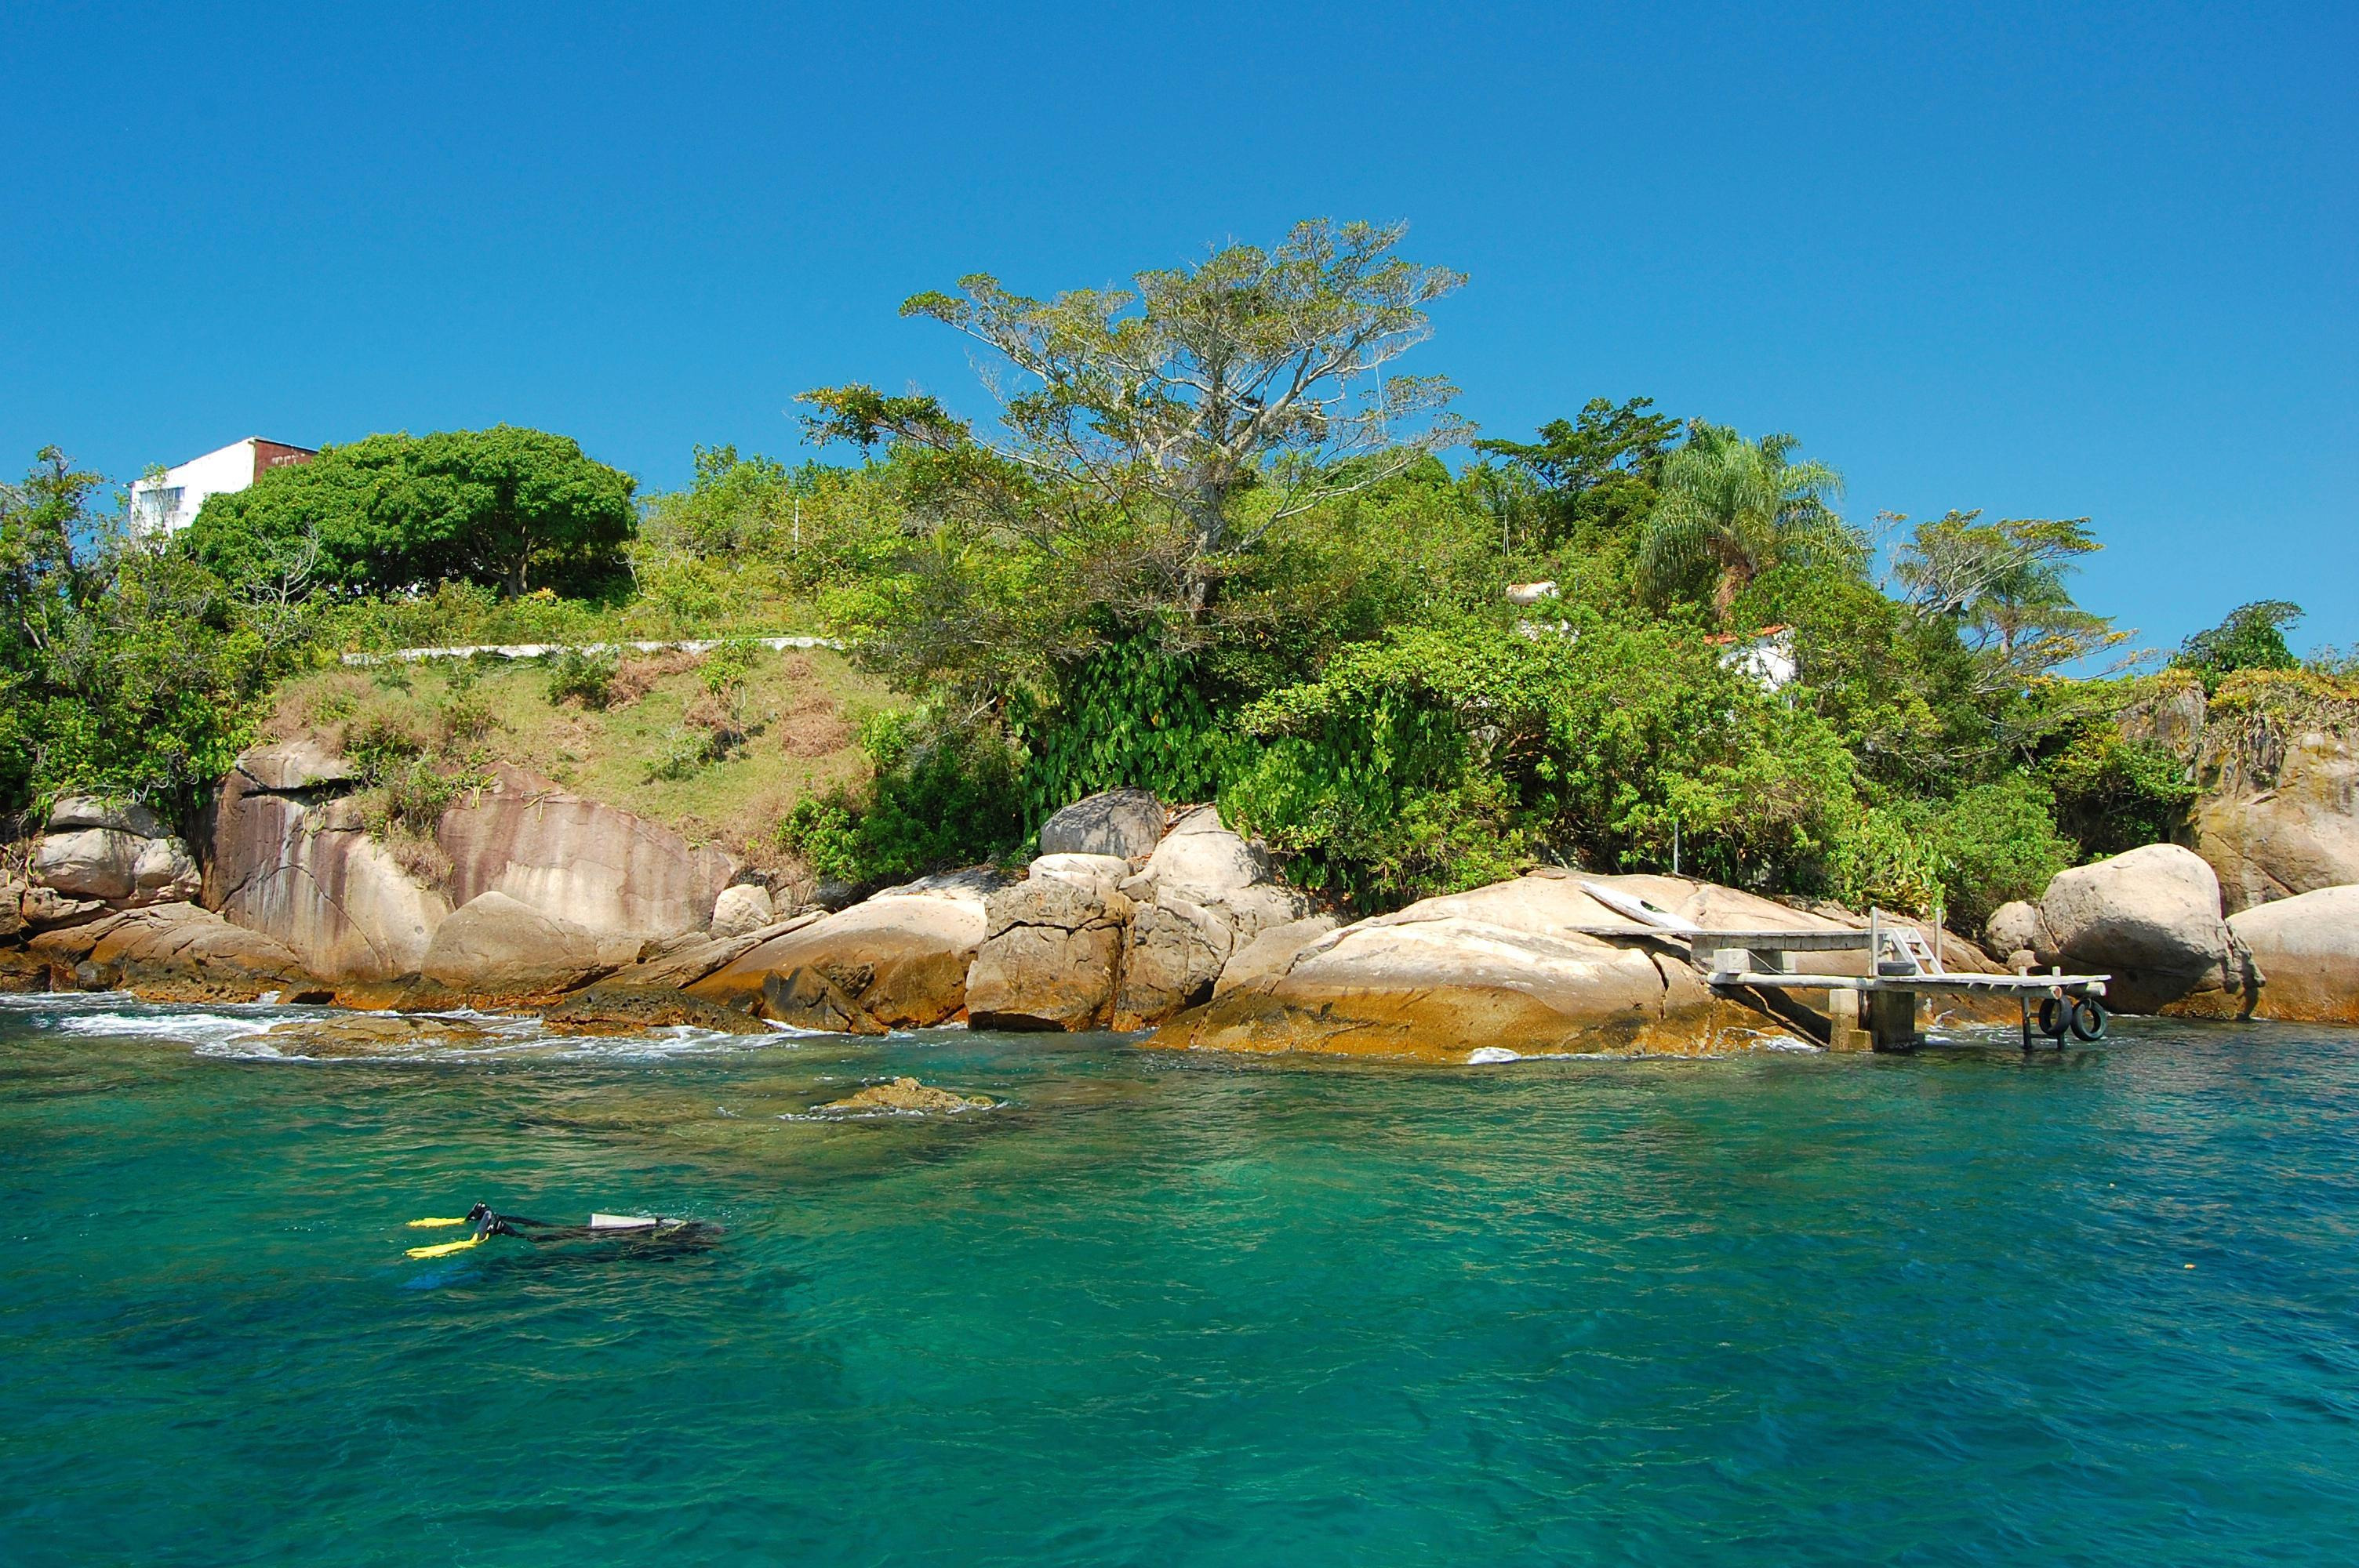 Top Snorkeling and Scuba Diving Spots in Paraty